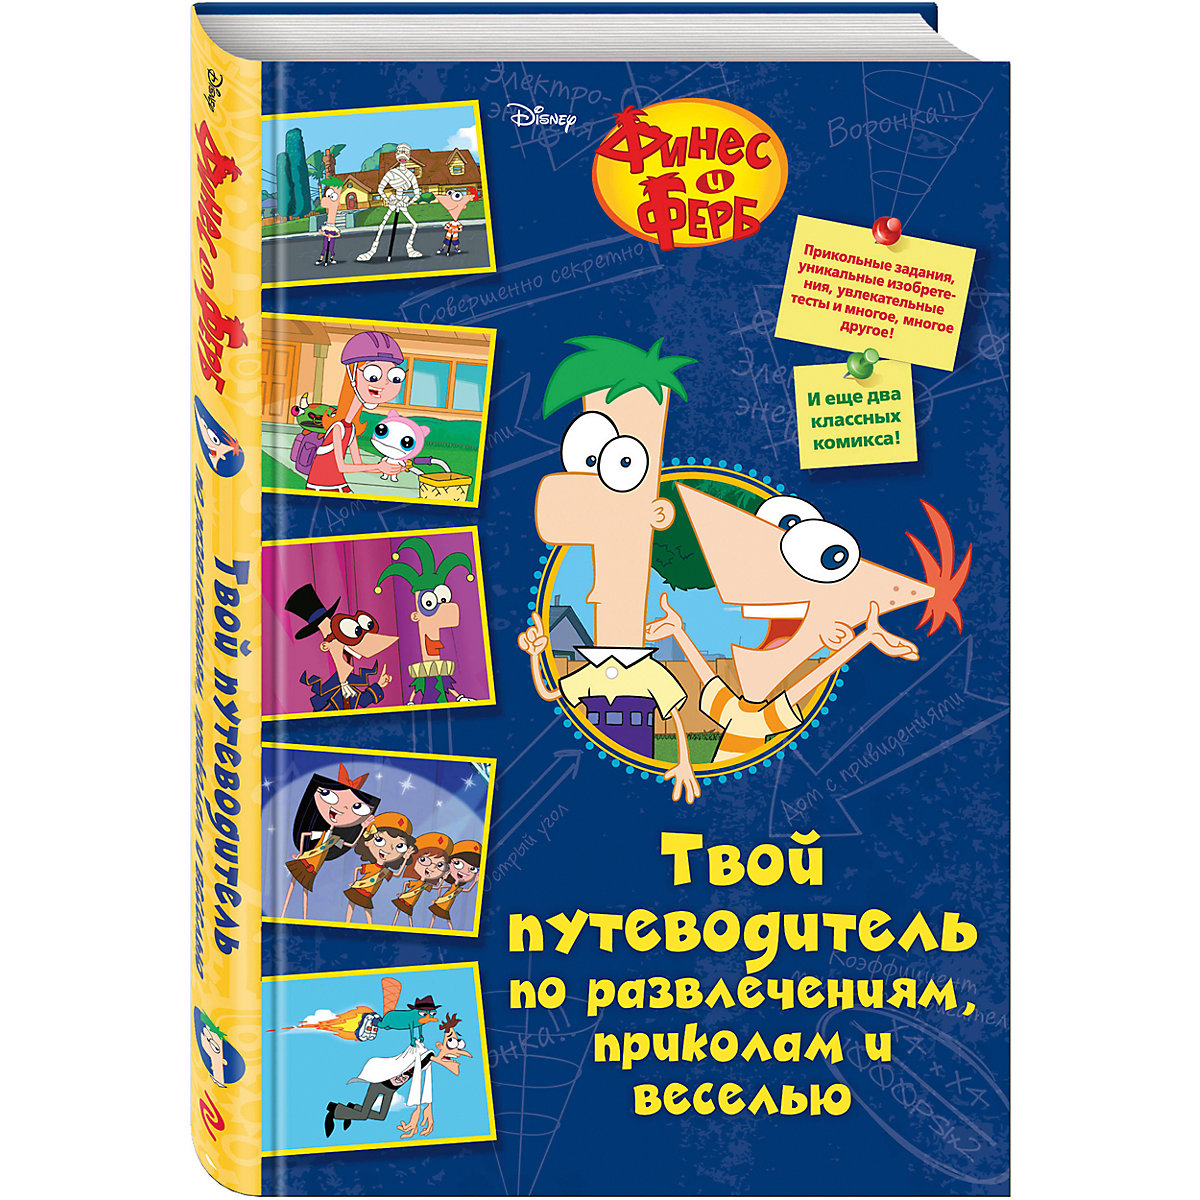 Books EKSMO 7367760 Children Education Encyclopedia Alphabet Dictionary Book For Baby MTpromo